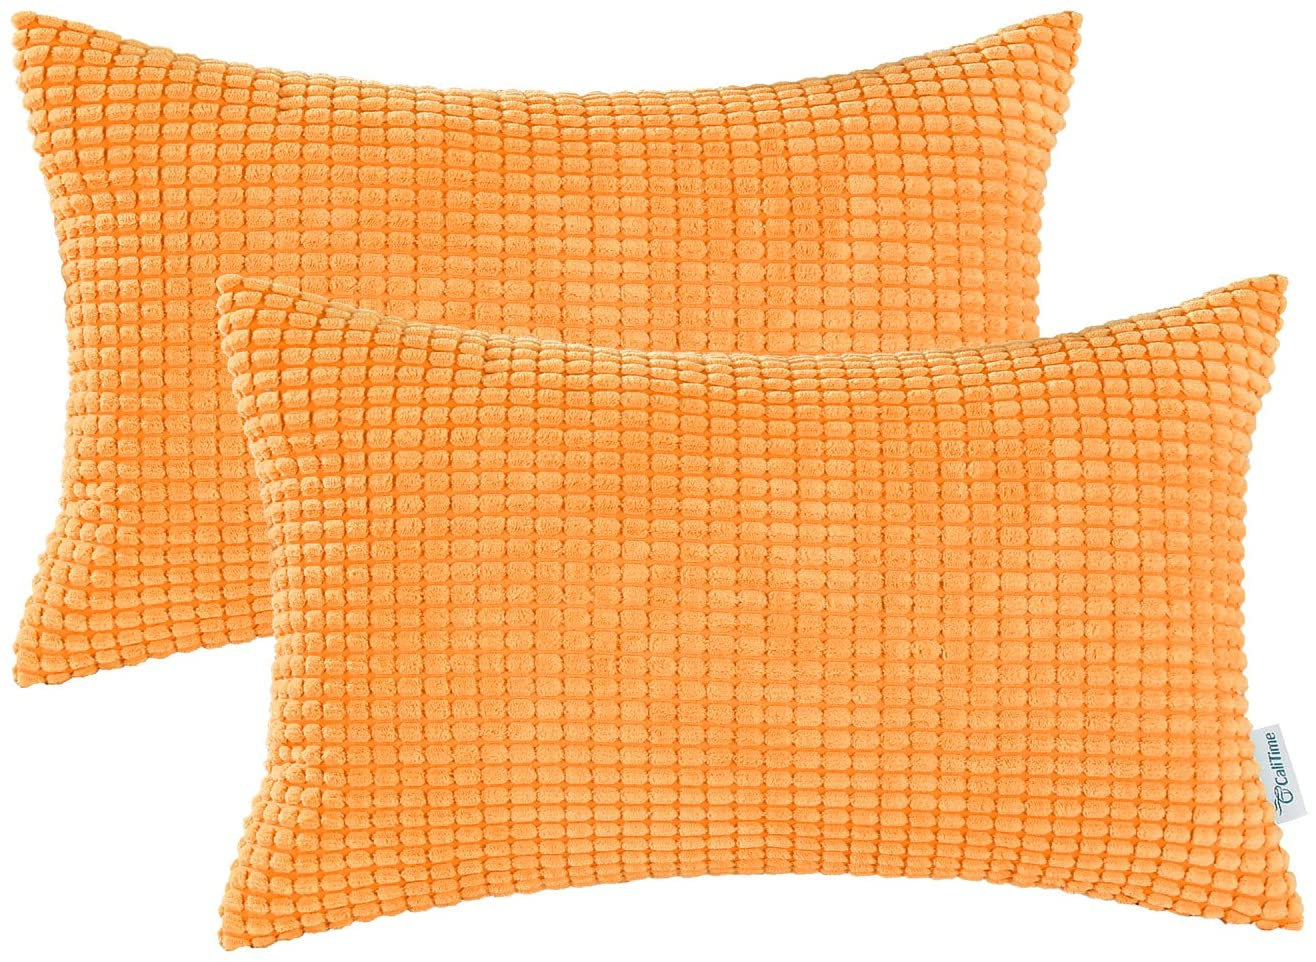 CaliTime Pack of 2 Comfy Bolster Pillow Covers Cases for Couch Sofa Bed Decoration Comfortable Supersoft Corduroy Corn Striped Both Sides 12 X 20 Inches Bright Orange